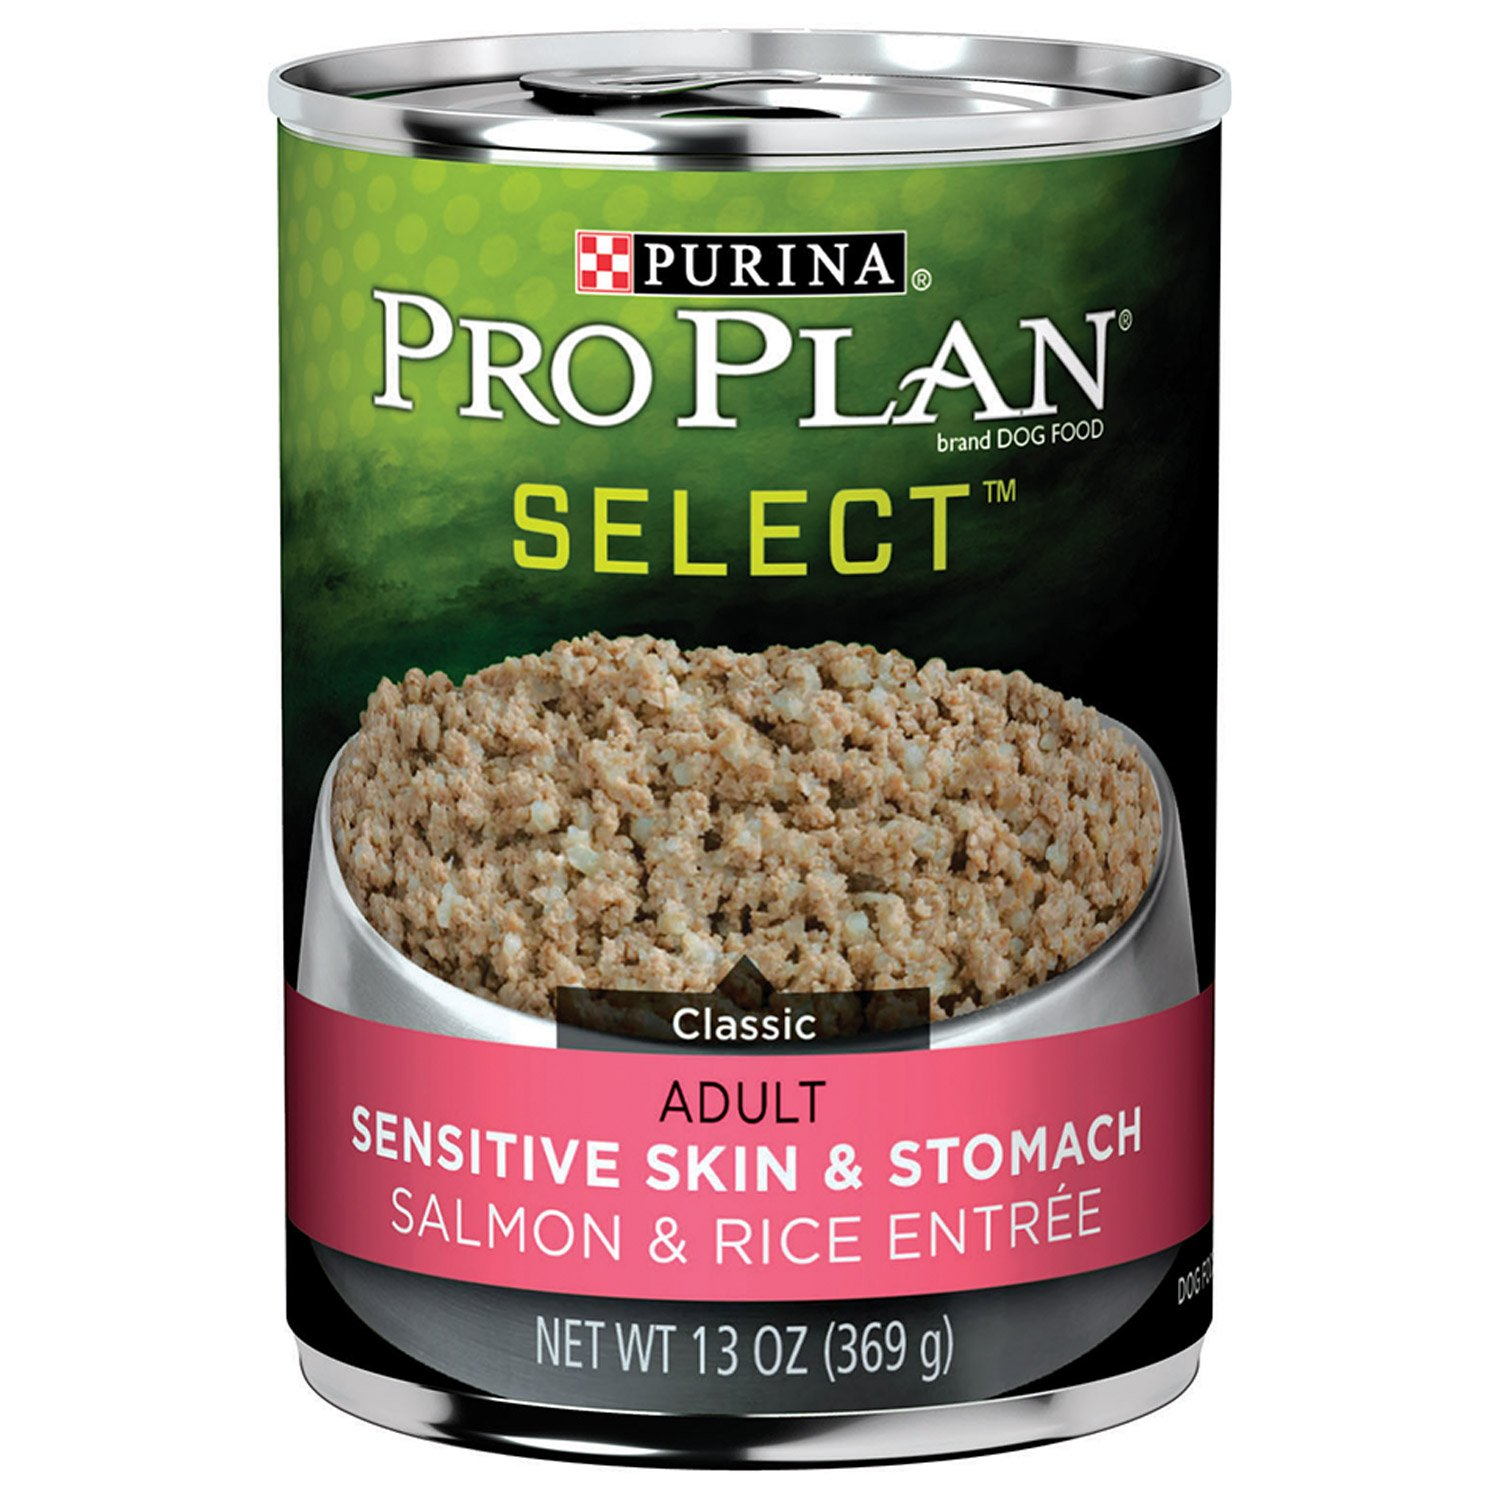 PRO PLAN SSKN/STOM SAL 13OZ 12 Count Case